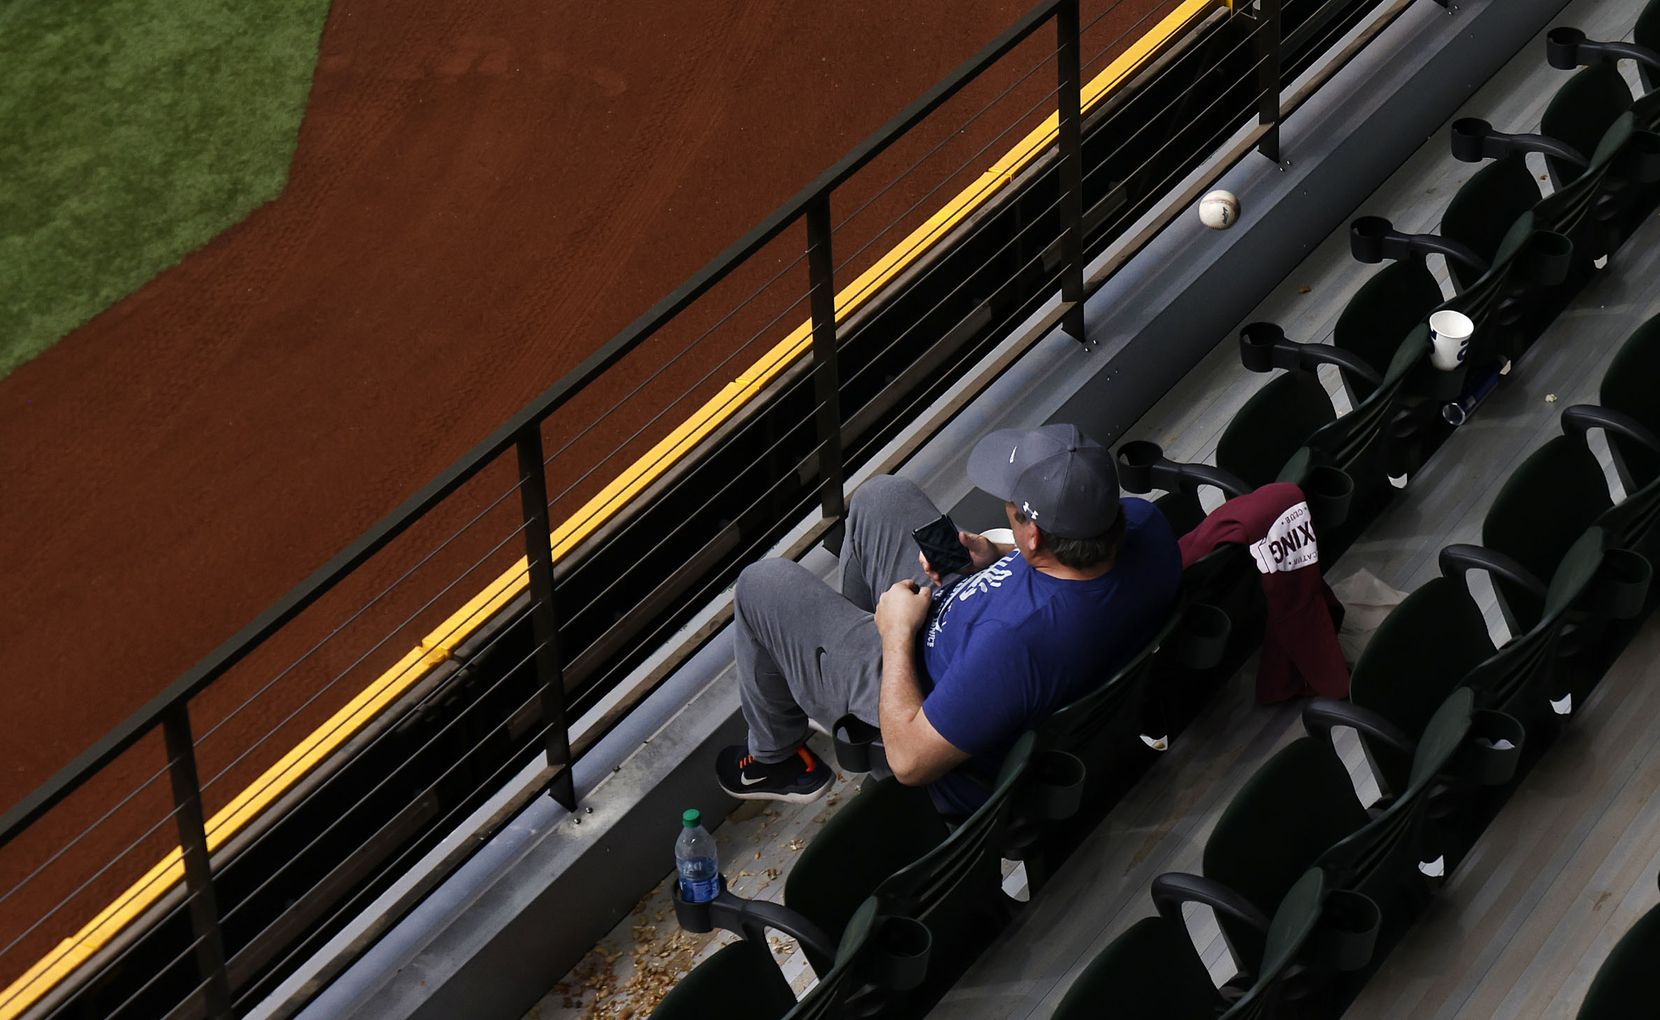 A home run ball off the bat of Texas Rangers batter Andy Ibáñez nearly hits a fan sitting in right field at Globe Life Field in Arlington, Texas. The Rangers were playing the Milwaukee Brewers in an exhibition game, Tuesday, March 30, 2021. (Tom Fox/The Dallas Morning News)